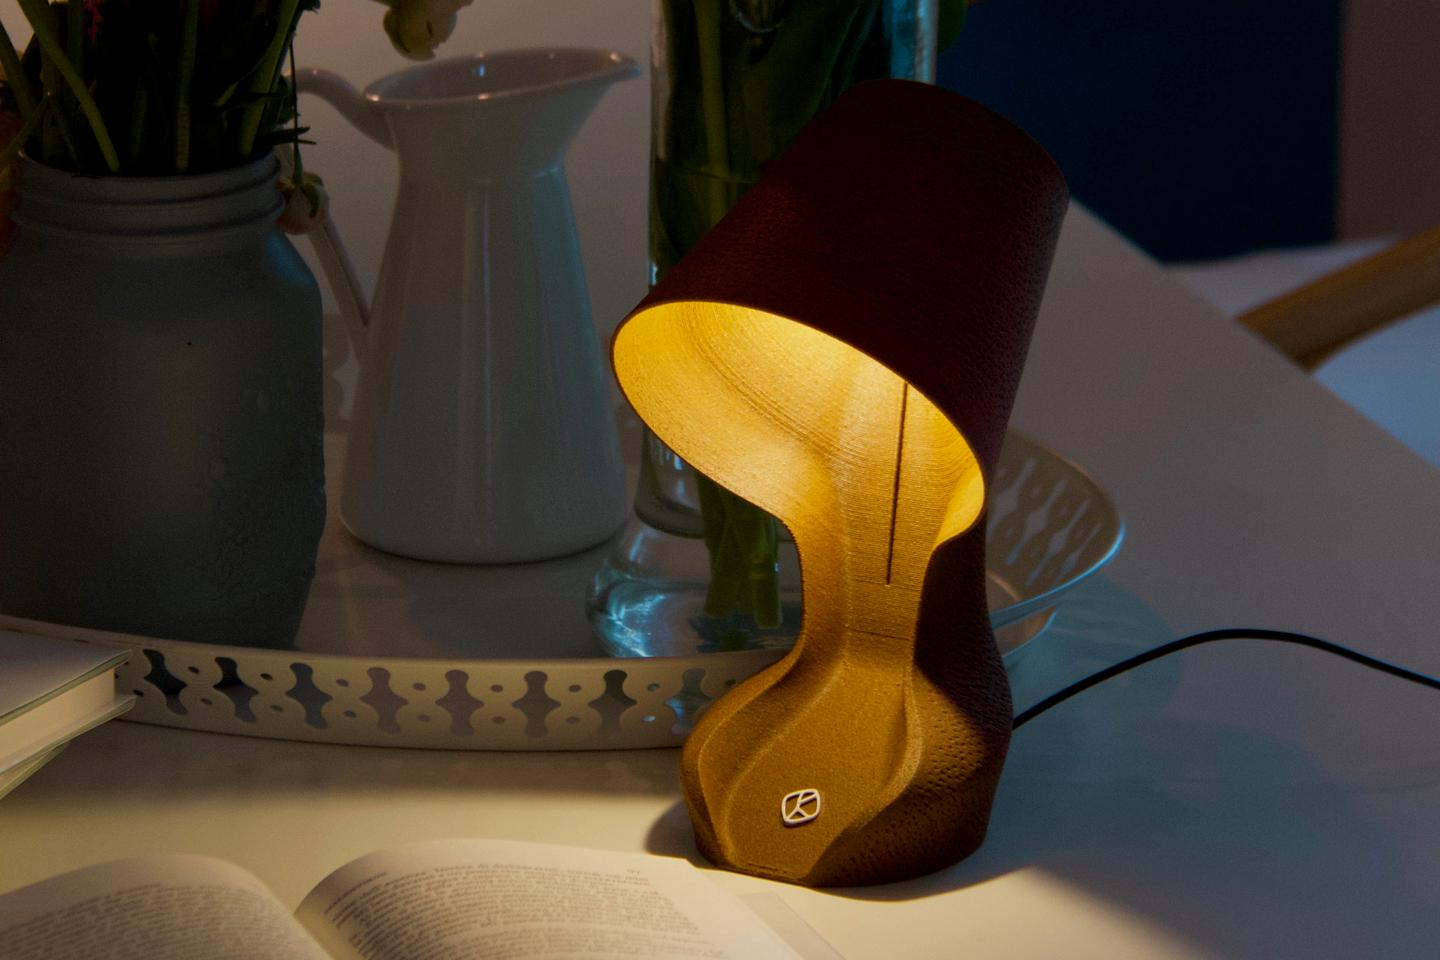 The Ohmie lamp puts out 70 to 90 lumens